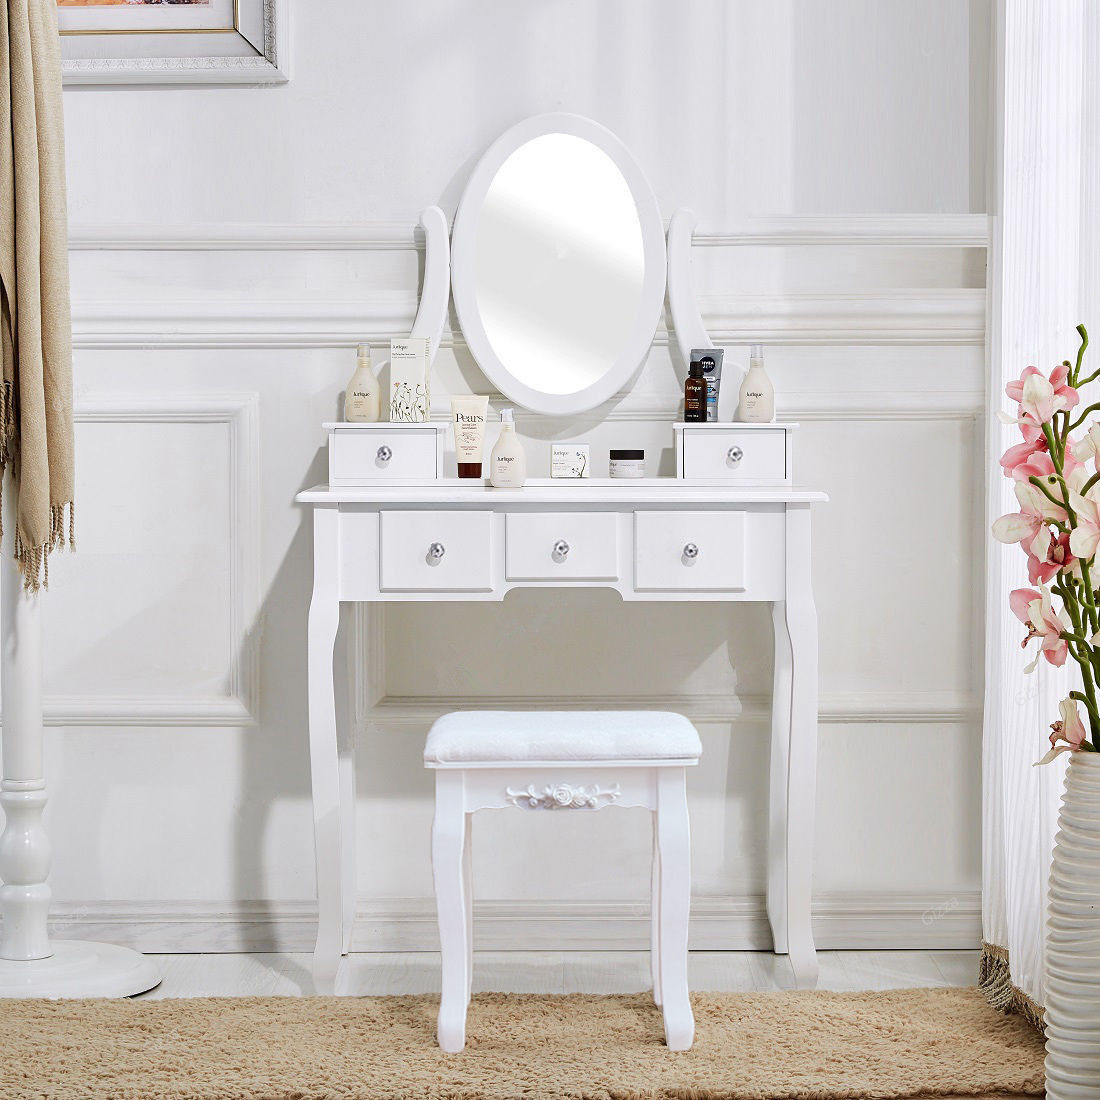 White Vanity Desk With Mirror.Vanity Desk White Vanity Table Makeup Dressing Table Set With Stool Mirror Jewelry Bedroom Furniture Set Us Shipping